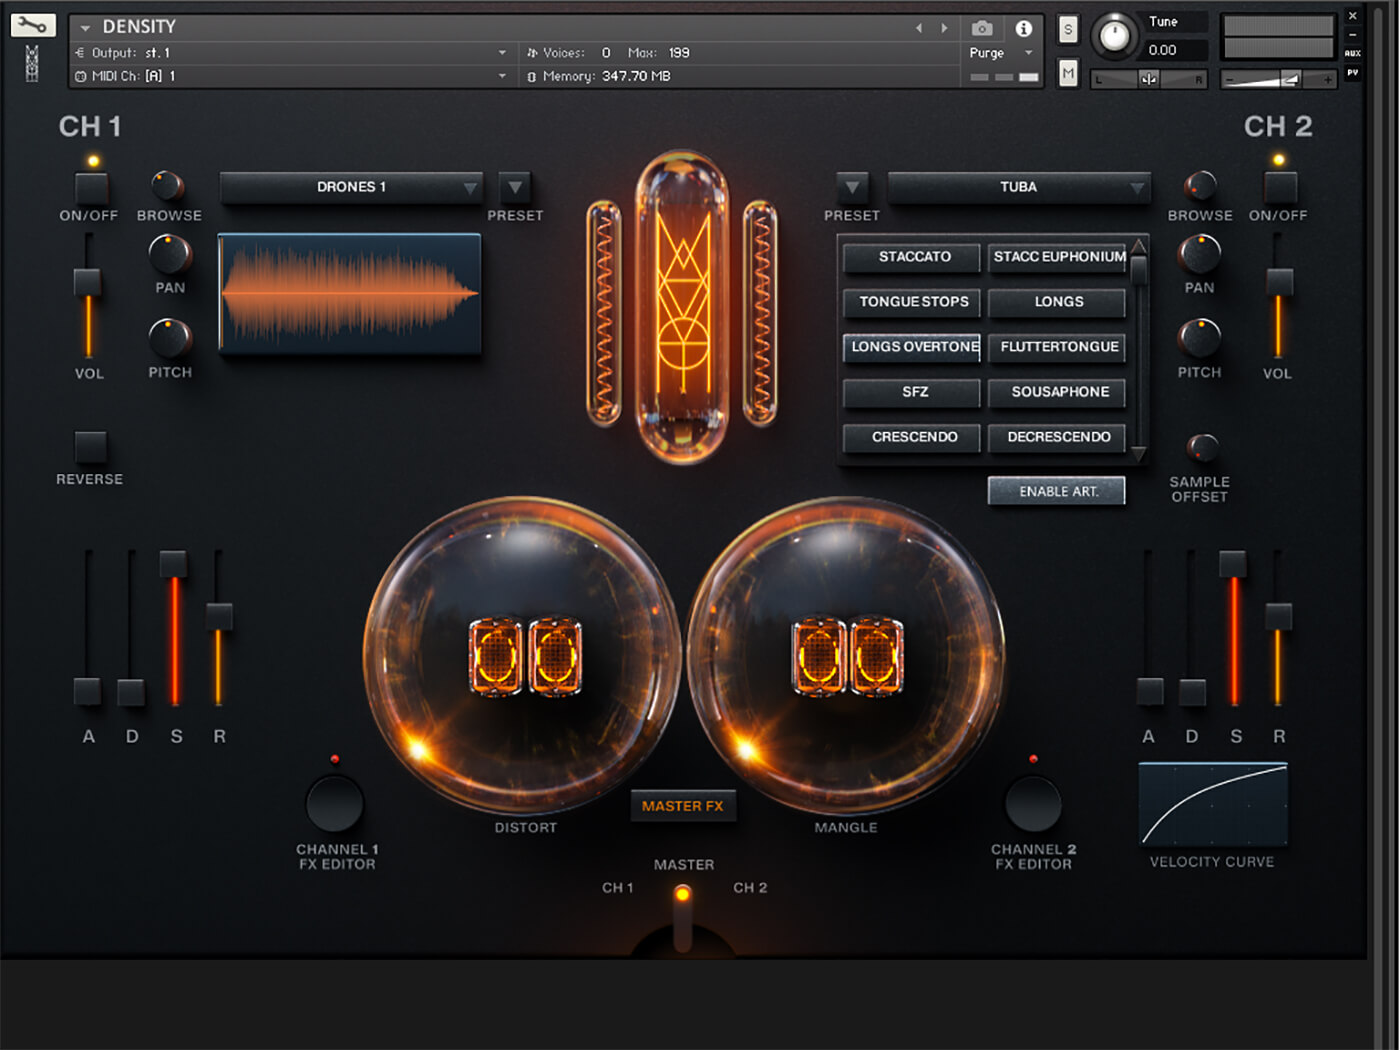 Mammoth Audio Density Review